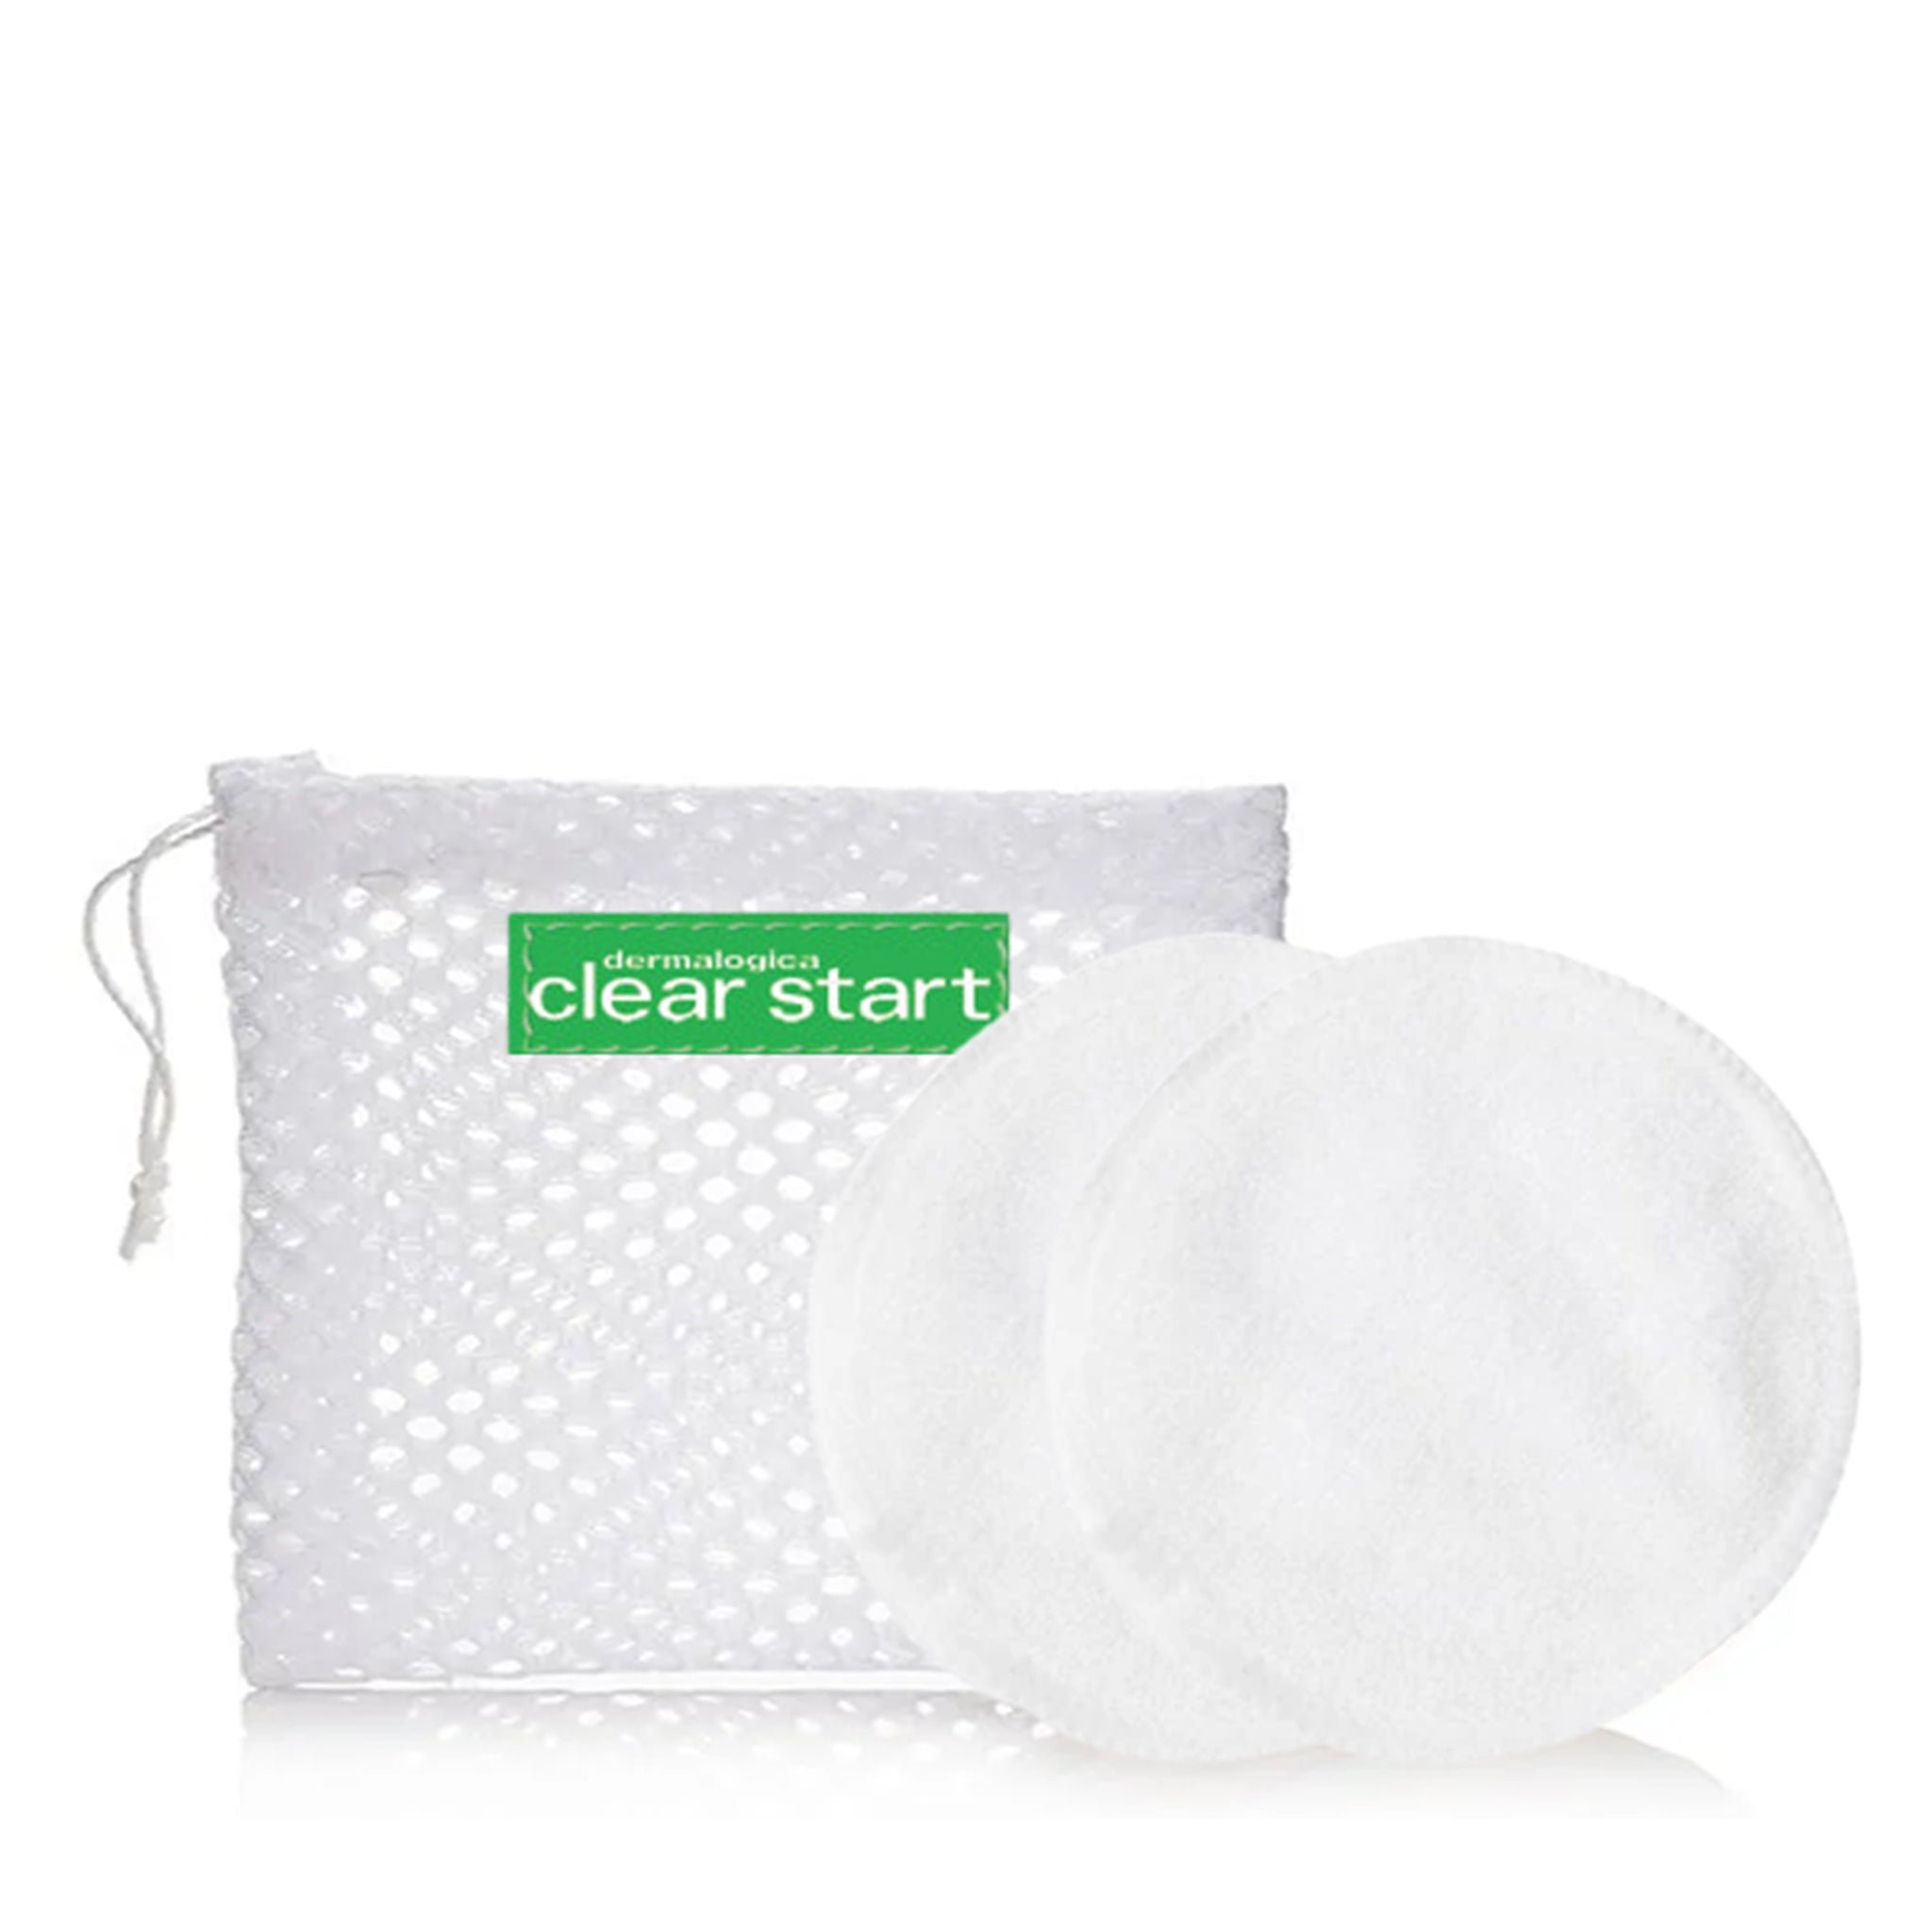 clear start cotton rounds